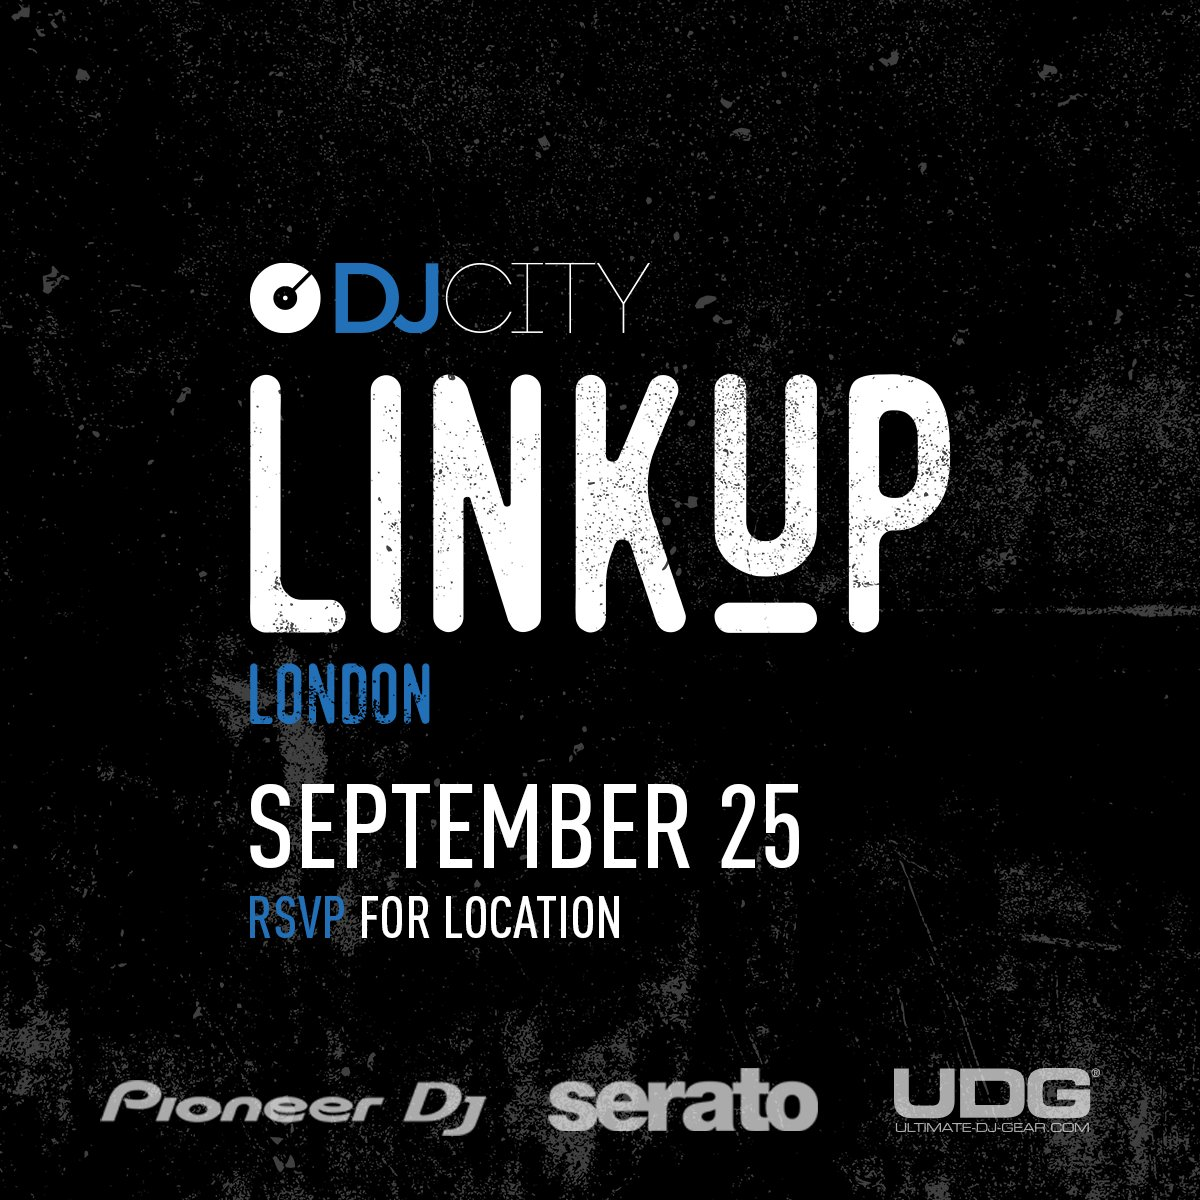 .@DJcityUK #LinkUp Sep 25th https://t.co/3Z8YAIoRCy https://t.co/Wd07Nezqlj